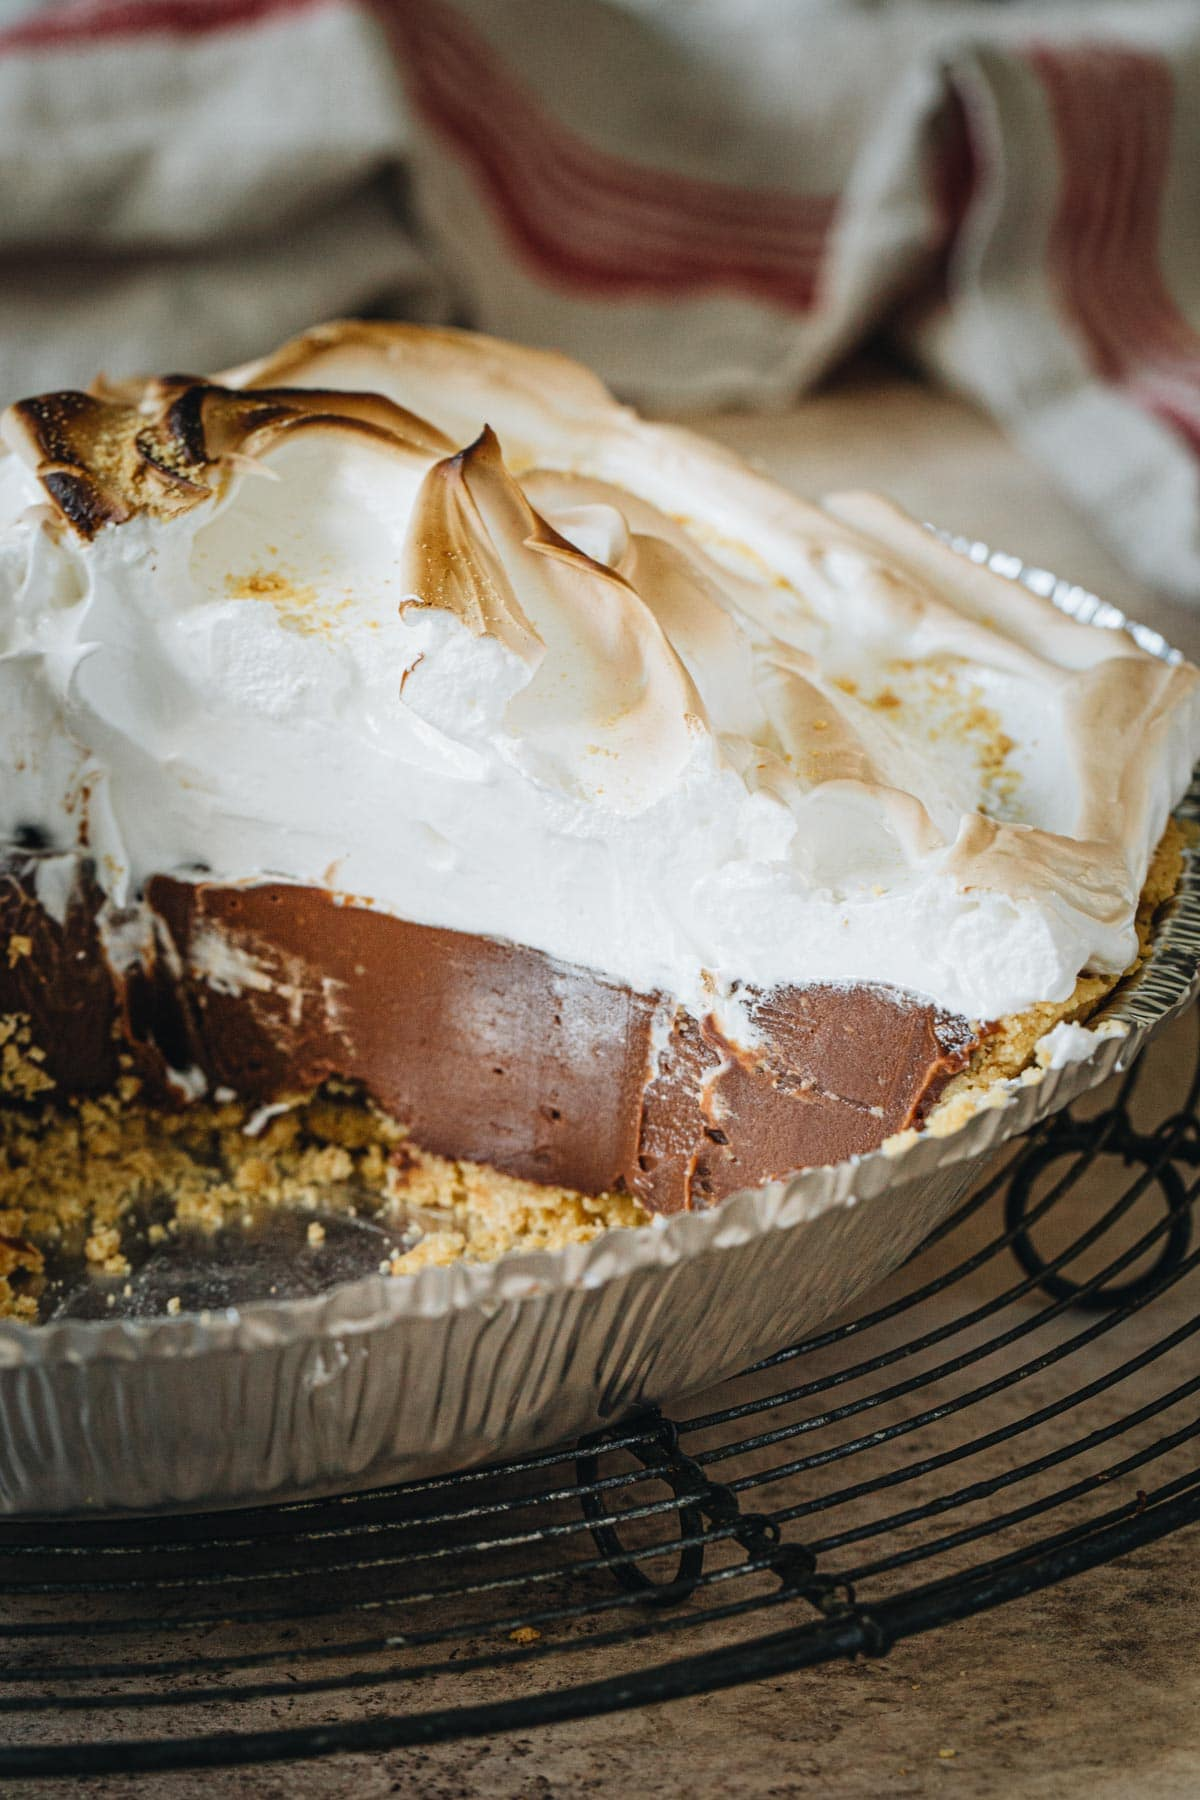 No-bake s'mores pie topped with marshmallow meringue in a metal pie plate.